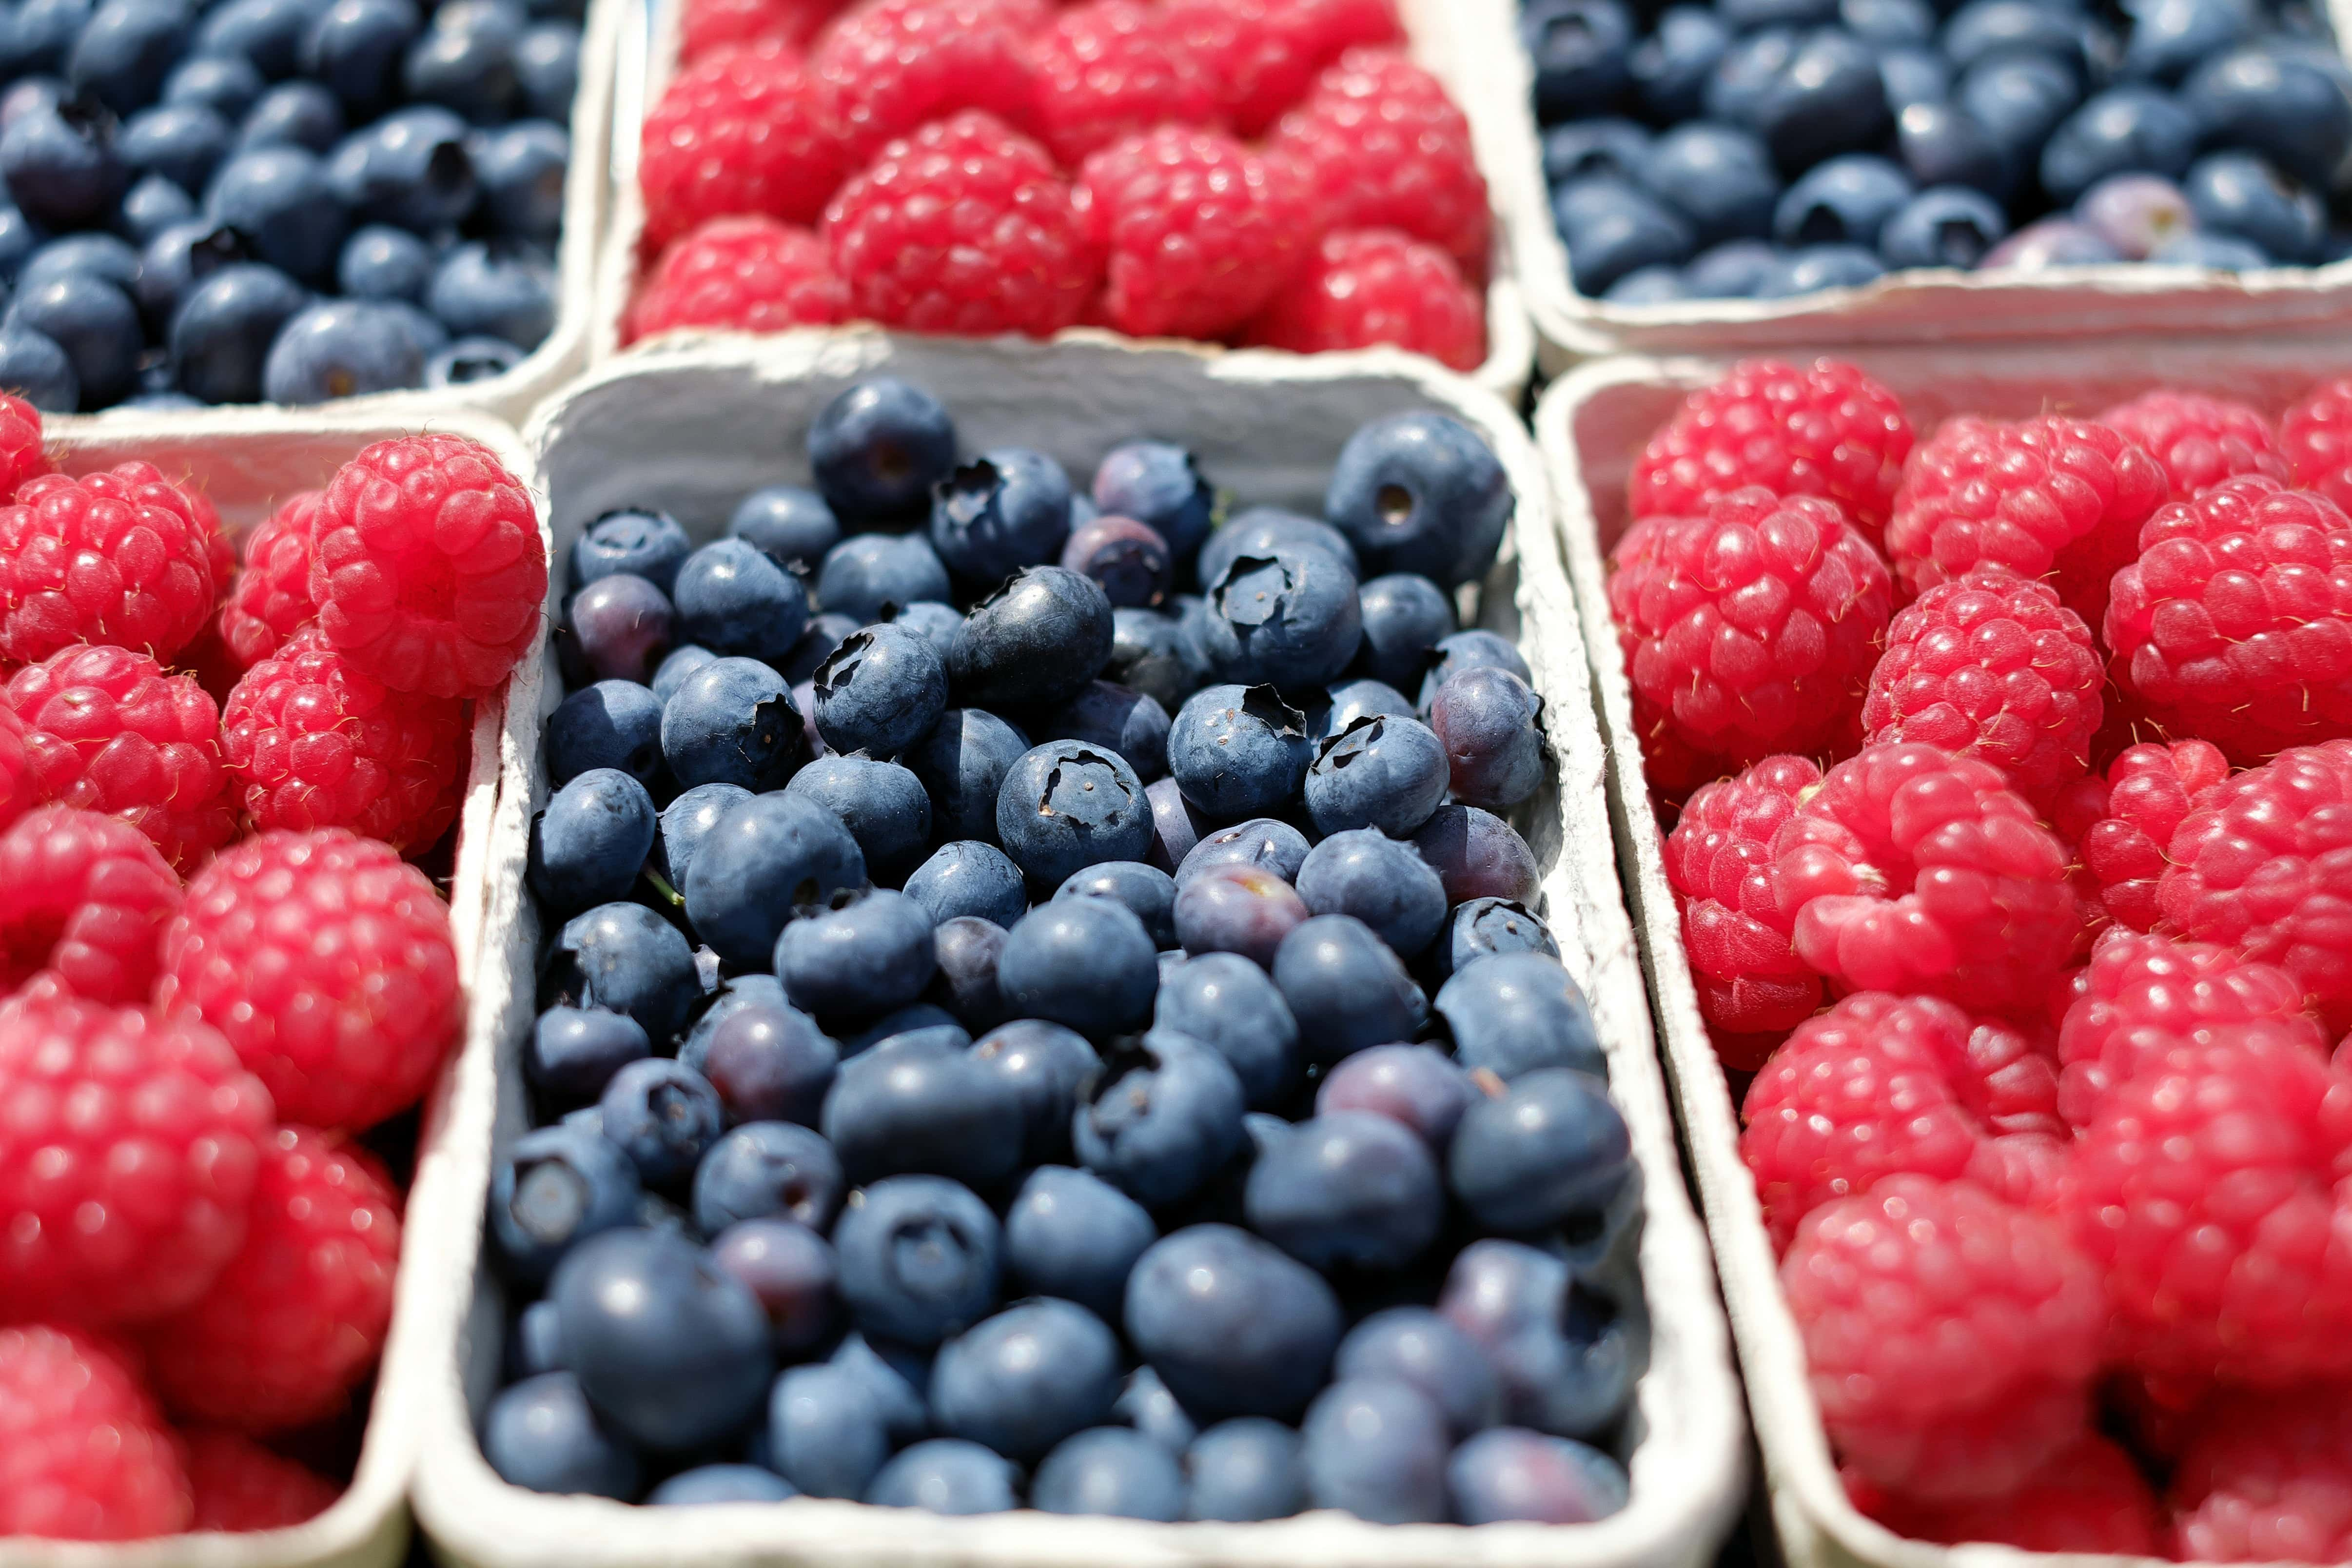 antioxidant rich blueberries and raspberries - berries